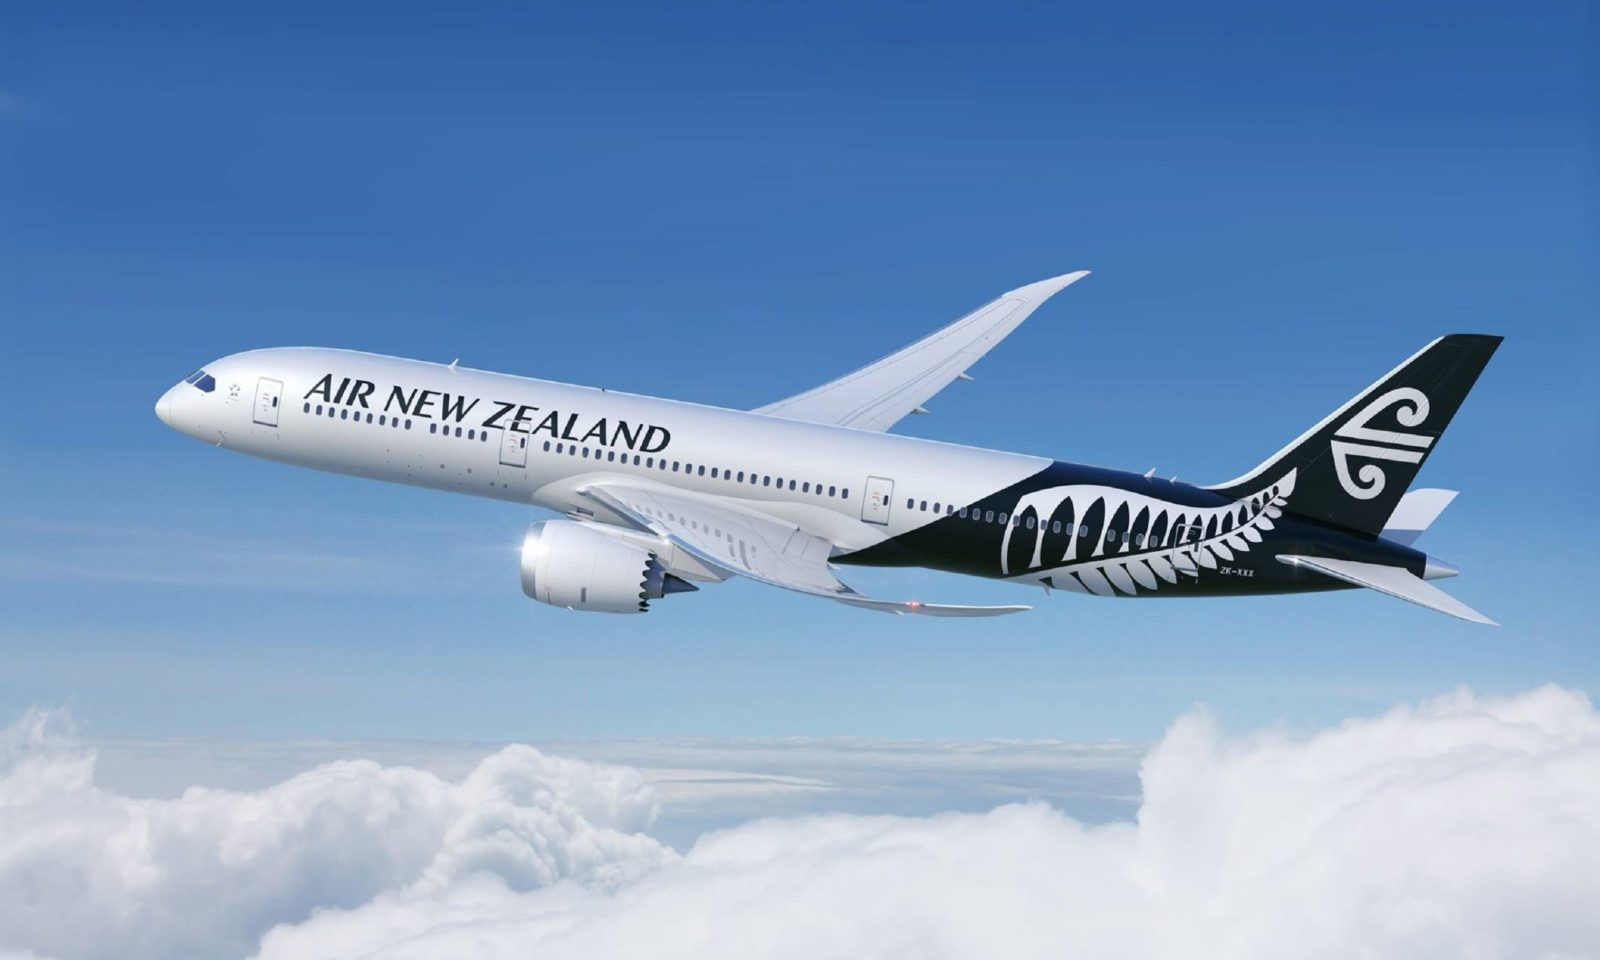 Air New Zealand, Perth, Western Australia